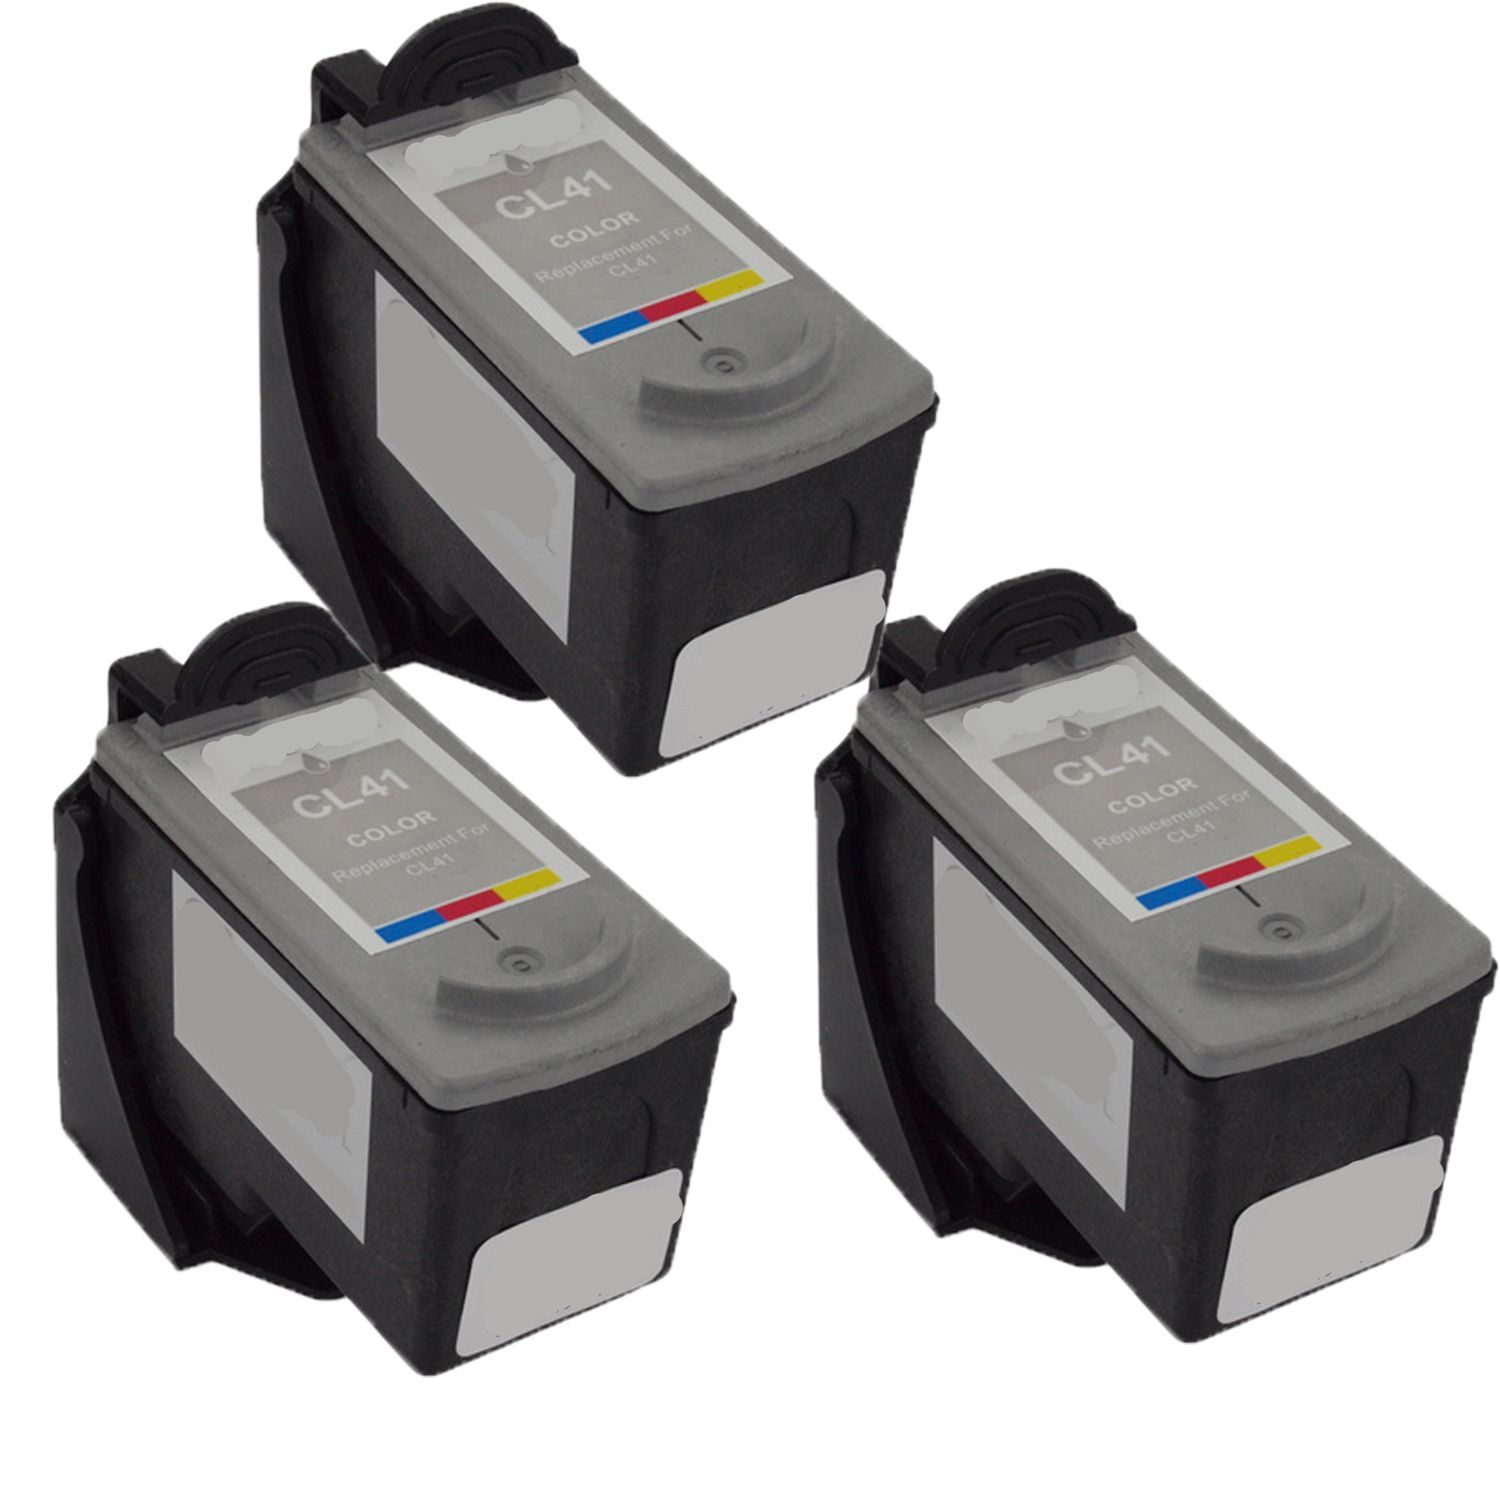 N CL-41 Compatible Inkjet Cartridge For JX200 MP140 MP150 MP160 MP170 MP180 MP190 MP210 MP450 MP460 MP470 MX300